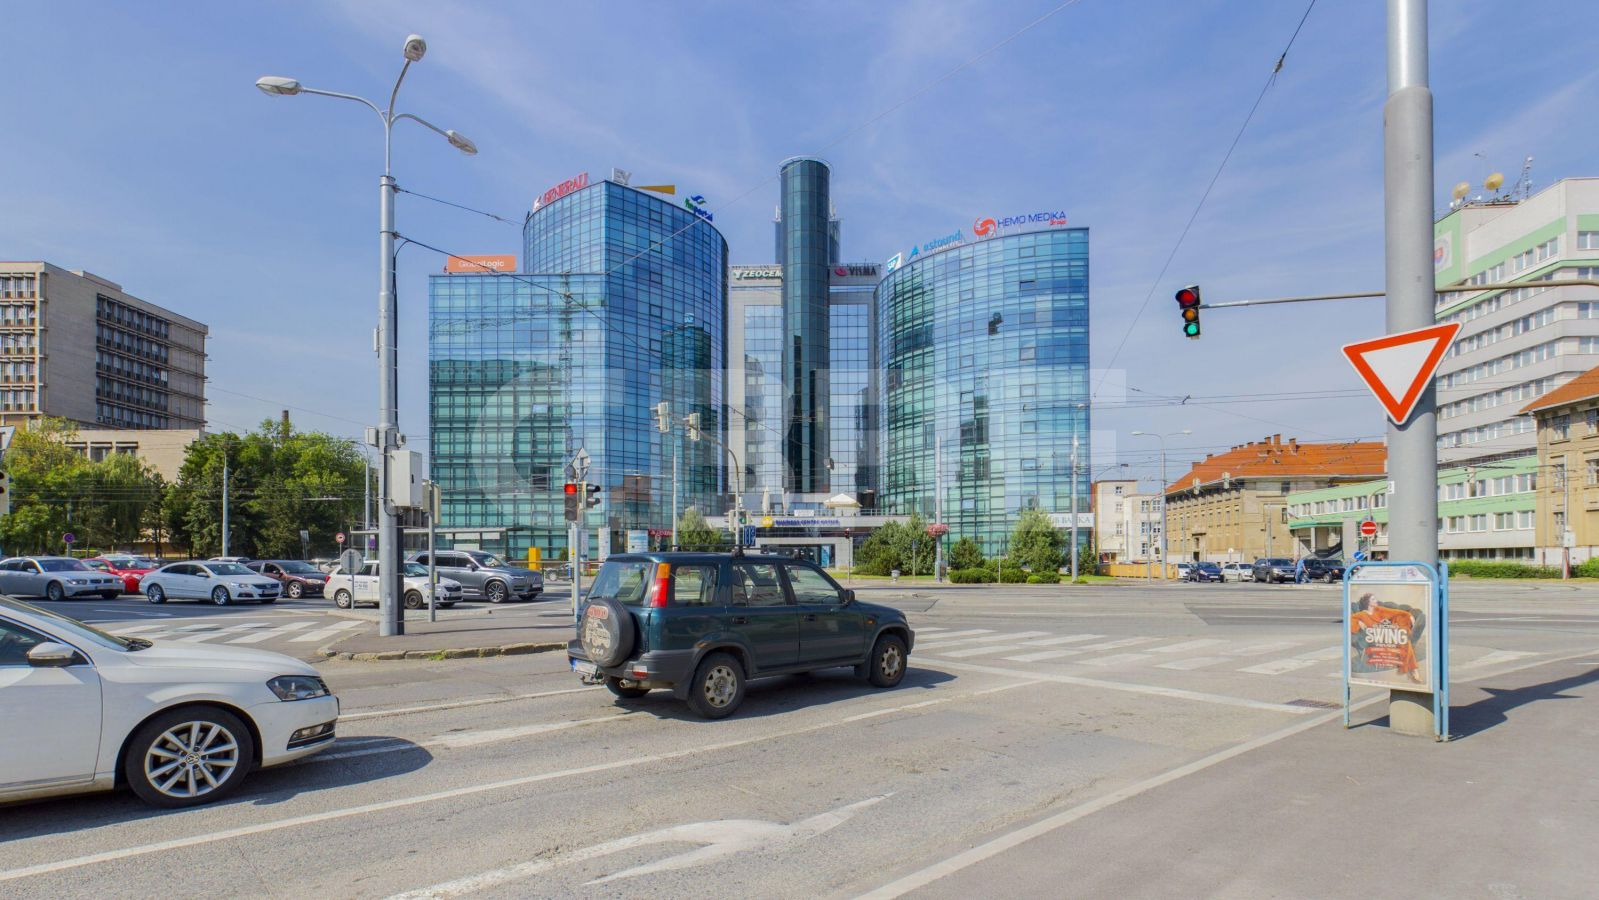 Business Center Košice II, Košice - Staré Mesto | Offices for rent by CBRE | 4